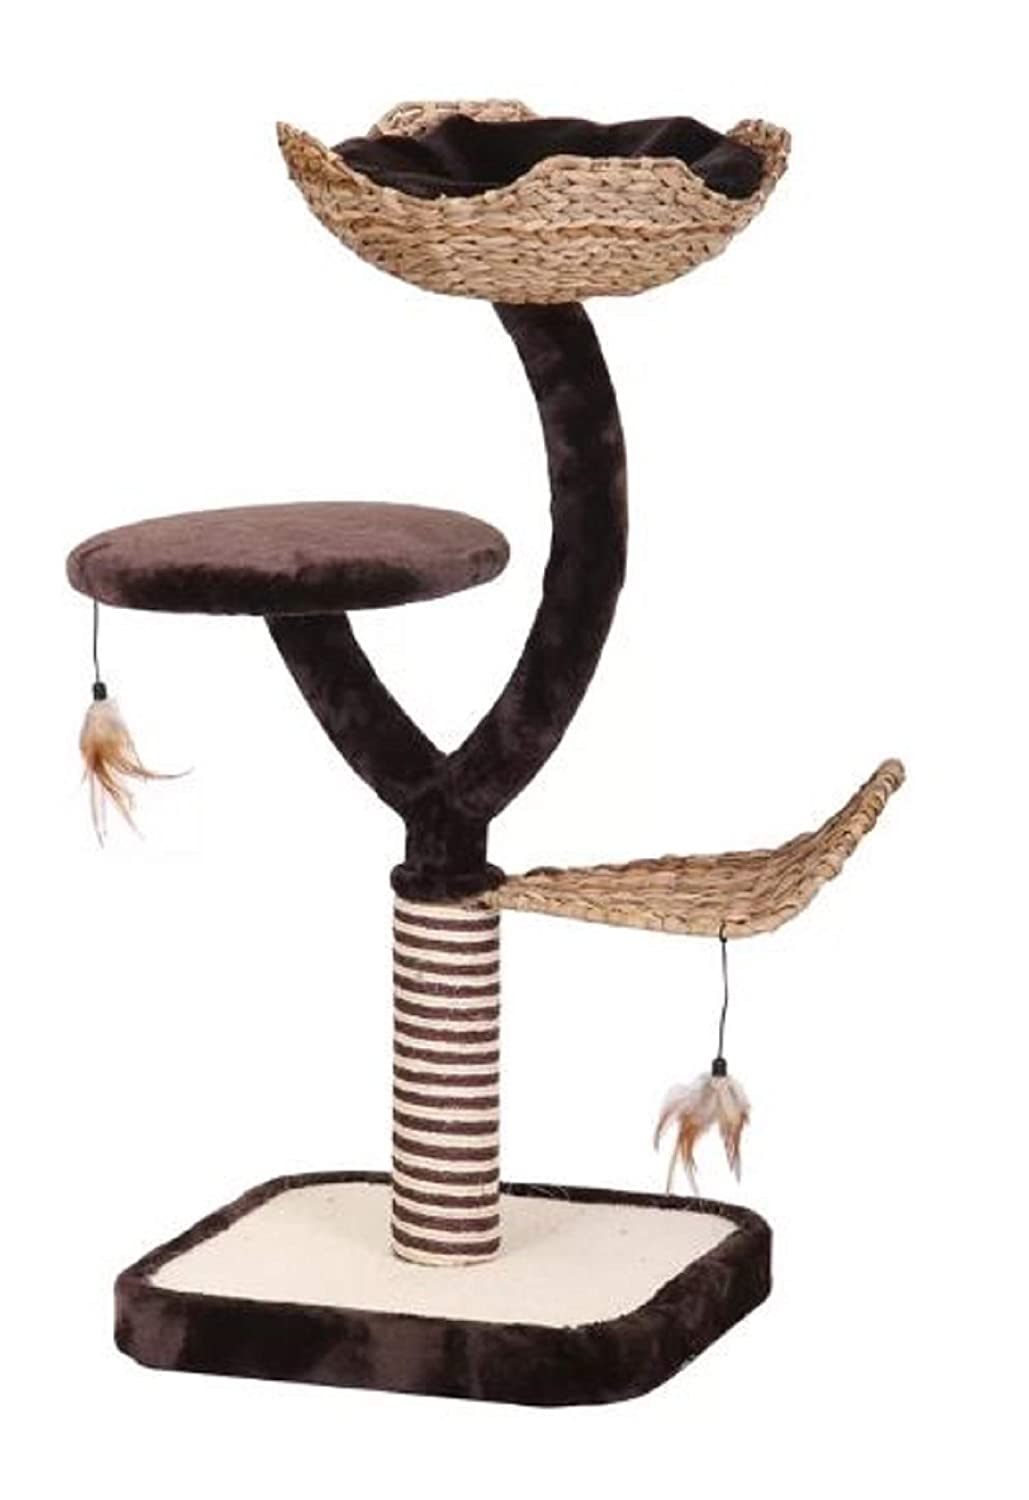 Three Level Cat Tree. Multi-Level House 39  Three Level Cat Tree with Nest and Small Swatting Toys Brown Cream